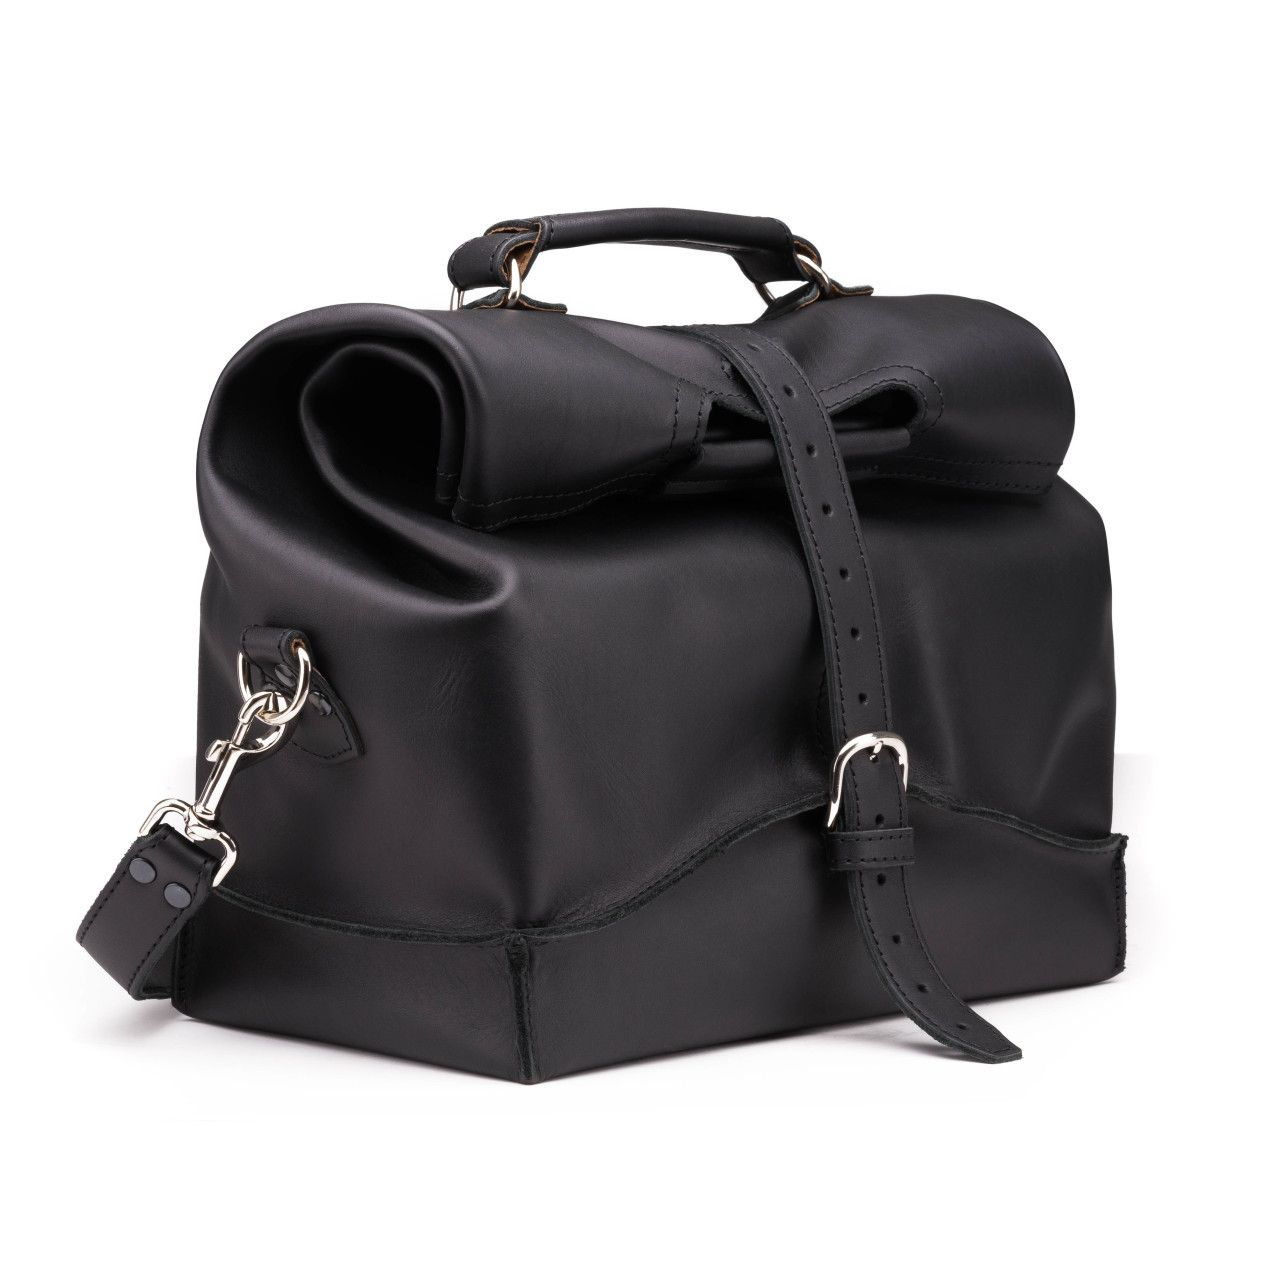 leather overnight bag large in black leather